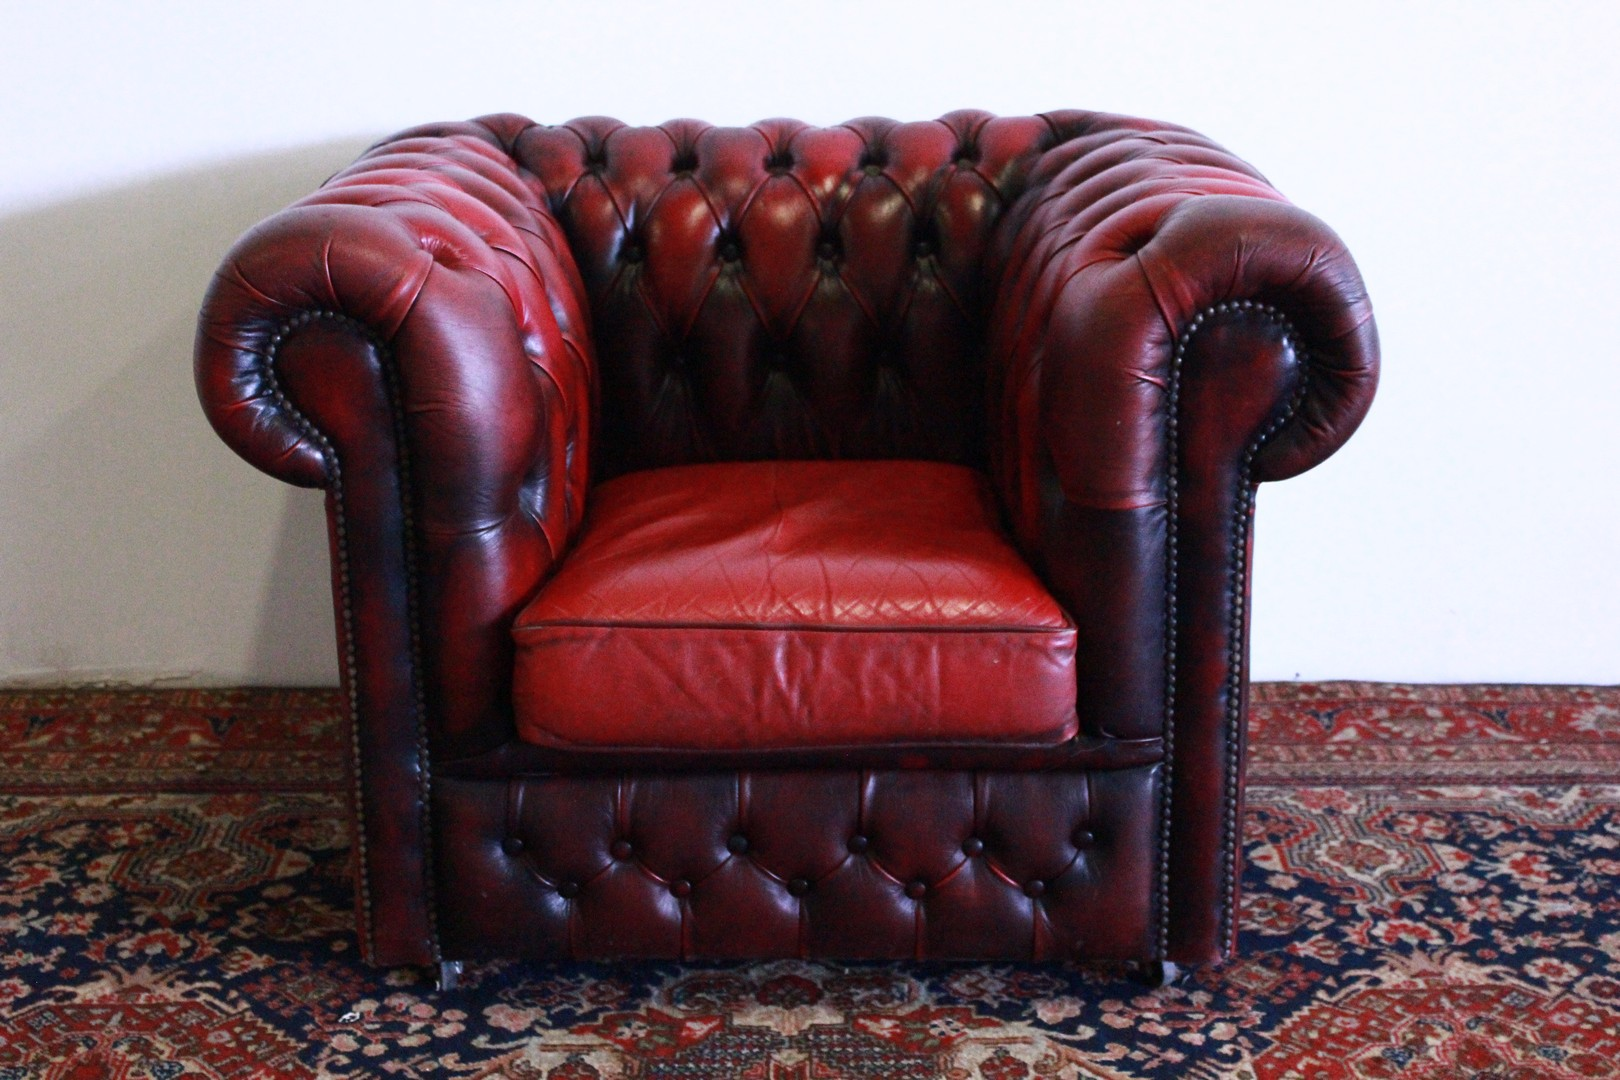 Poltrona Pelle Bordeaux.Original Chesterfield Club Armchair Made In The Uk Club